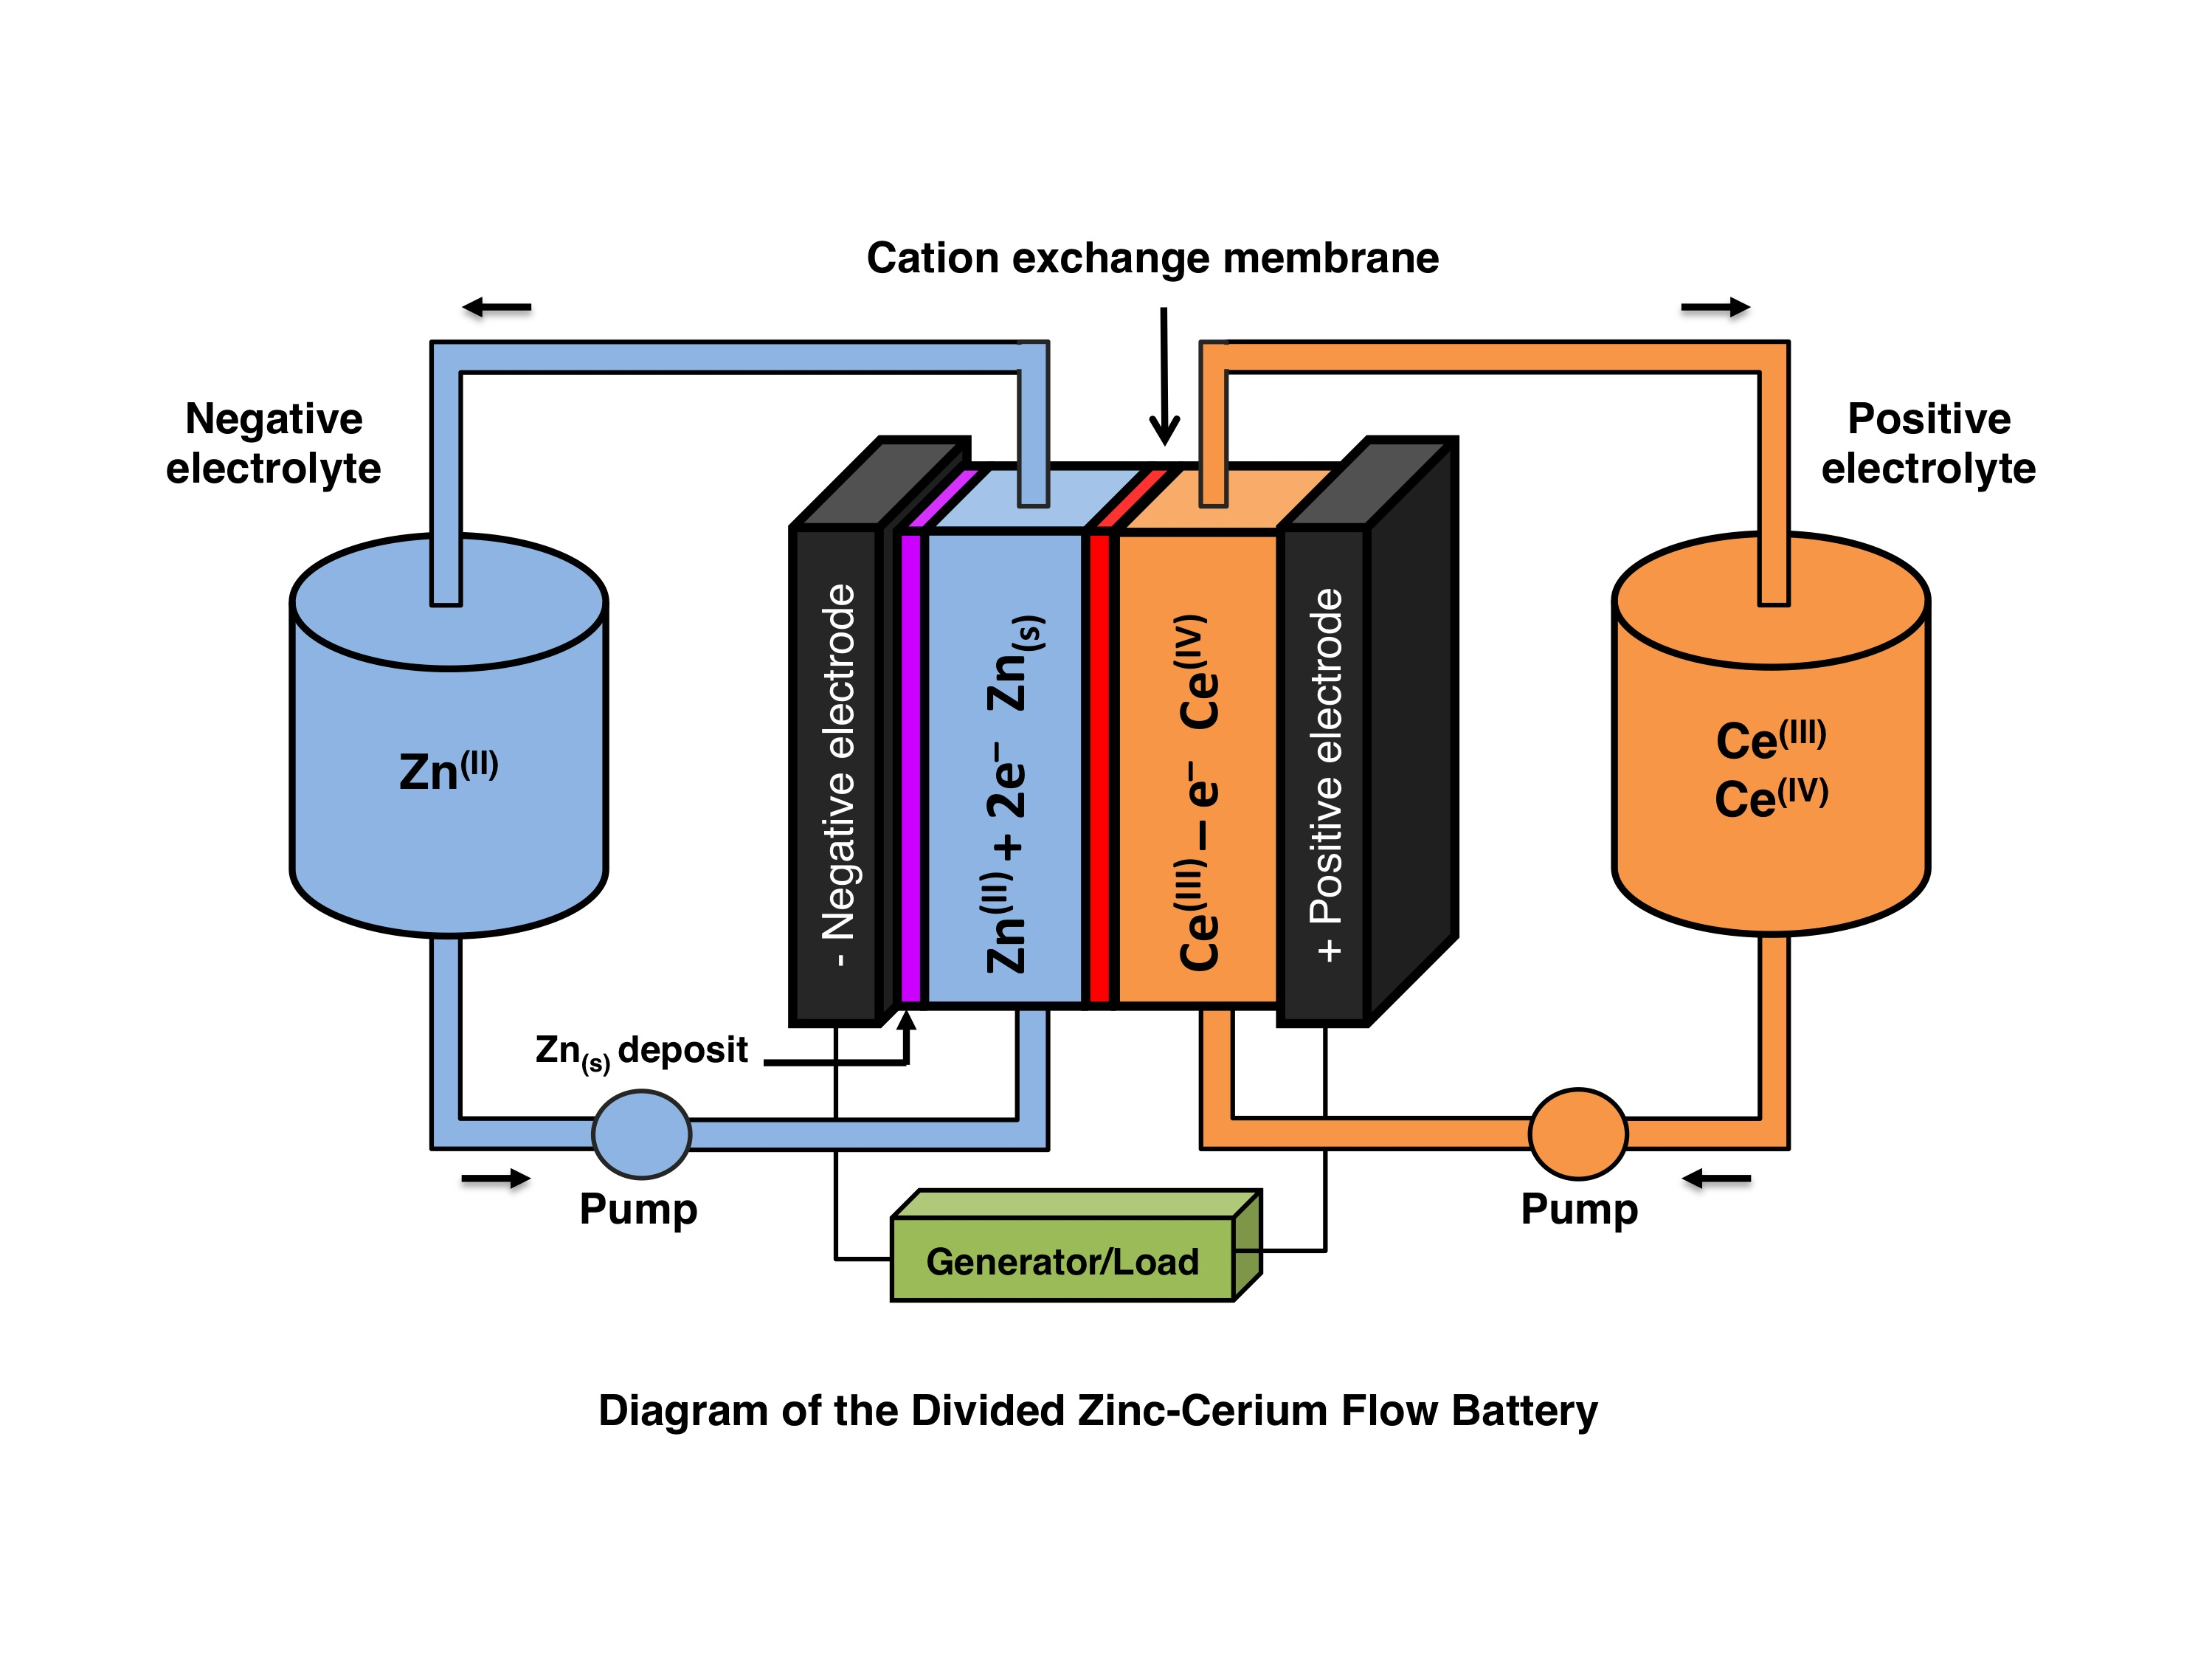 Filediagram of the divided zinc cerium redox flow batteryg filediagram of the divided zinc cerium redox flow batteryg ccuart